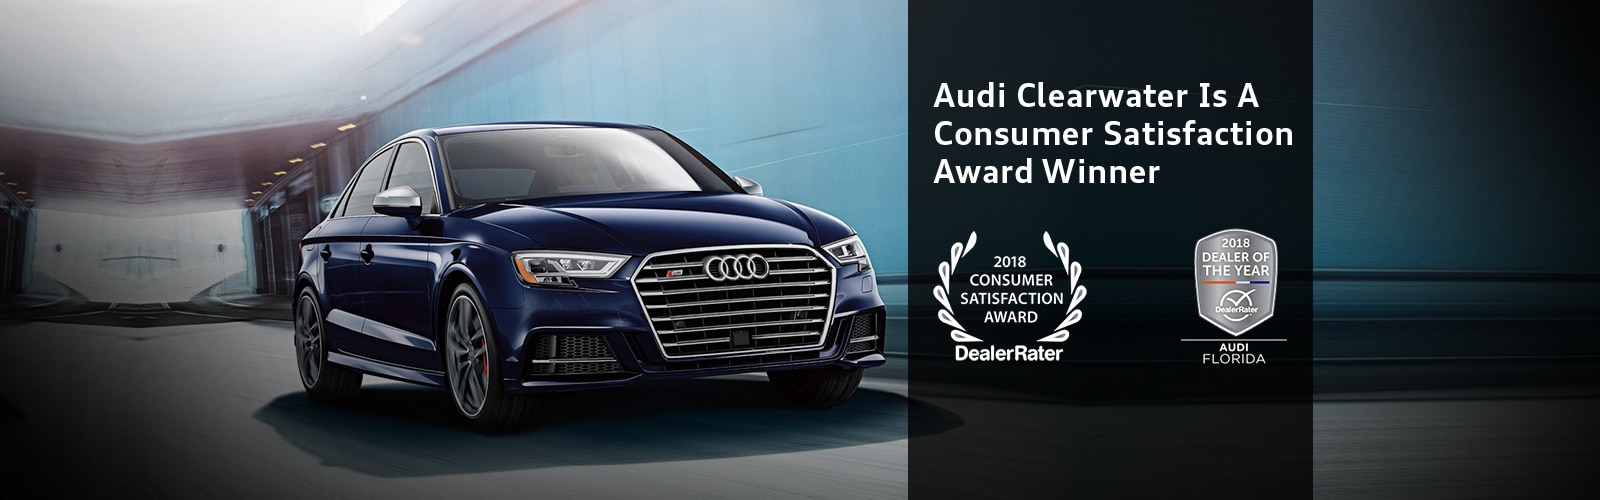 Audi Clearwater New Audi Dealership Near St Petersburg Tampa - Audi dealers in south florida